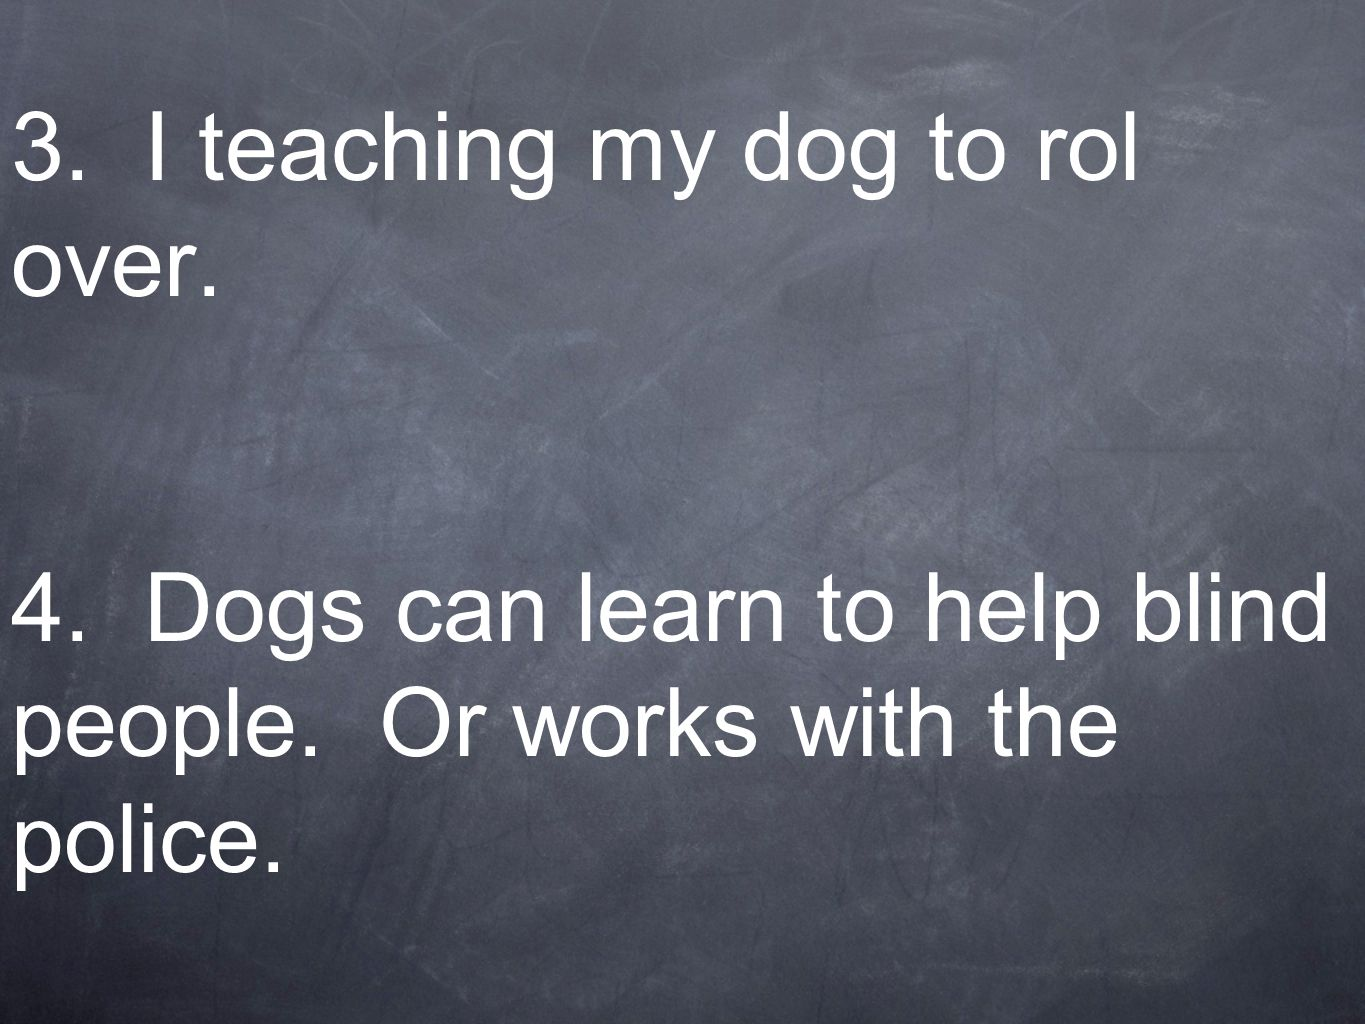 3. I teaching my dog to rol over. 4. Dogs can learn to help blind people. Or works with the police.